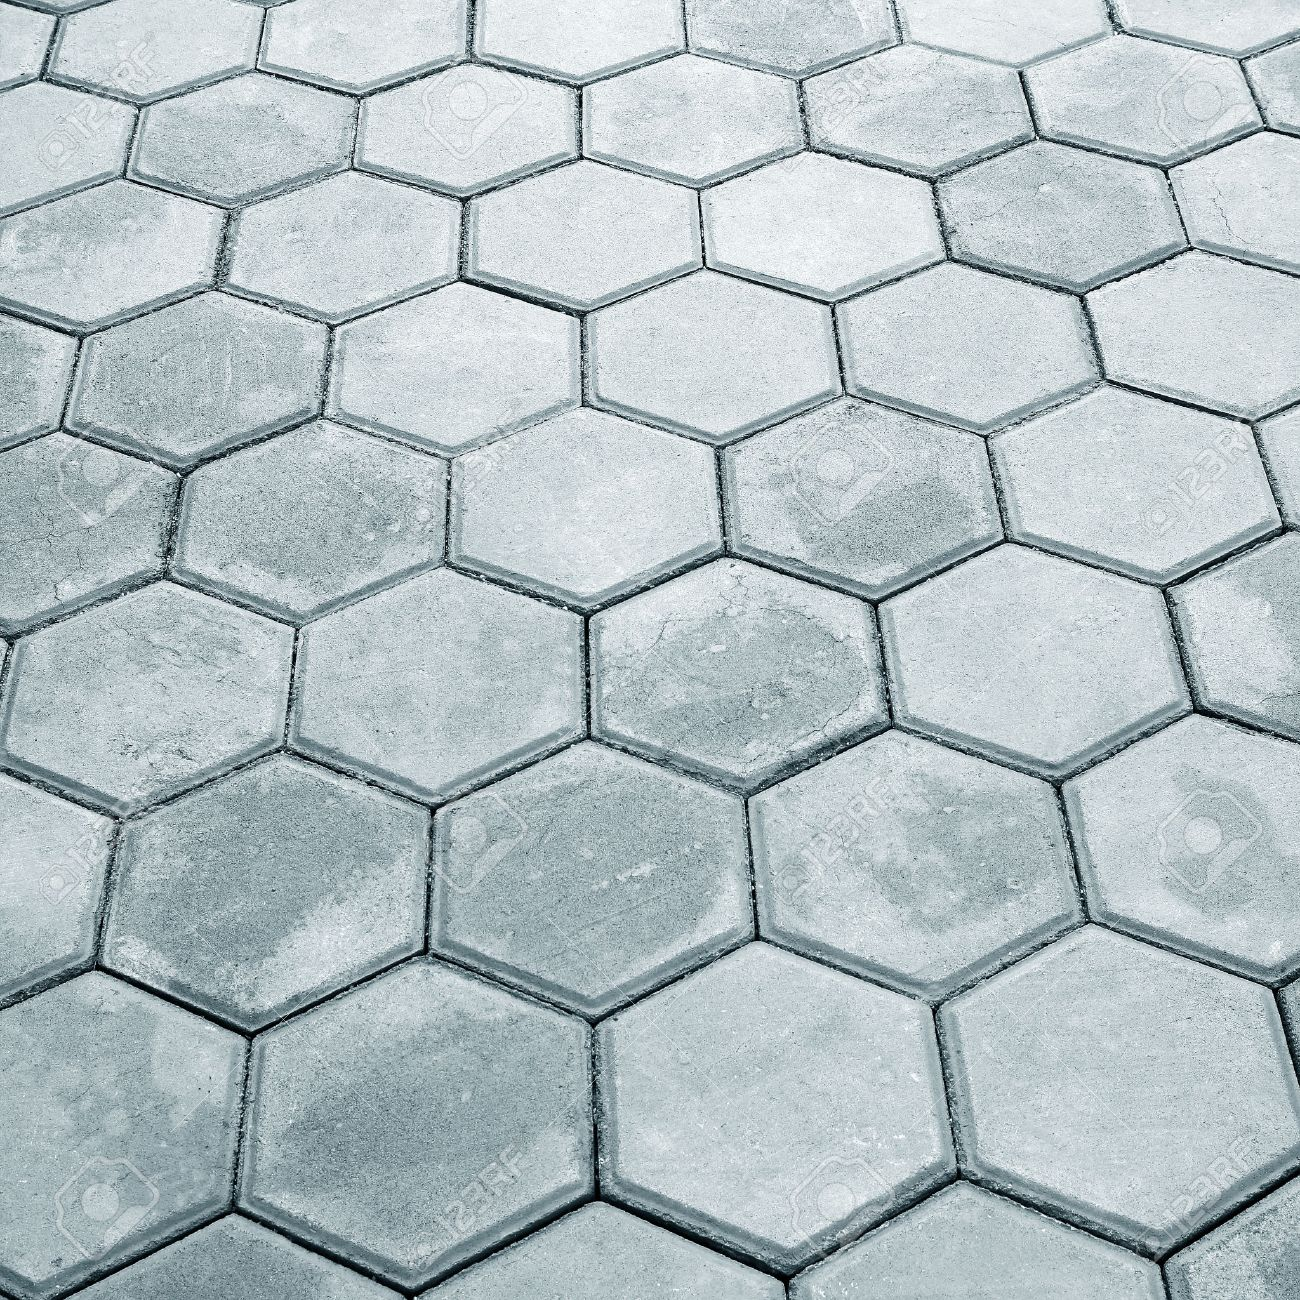 paving hexagon brick walkway the pattern of stone block paving